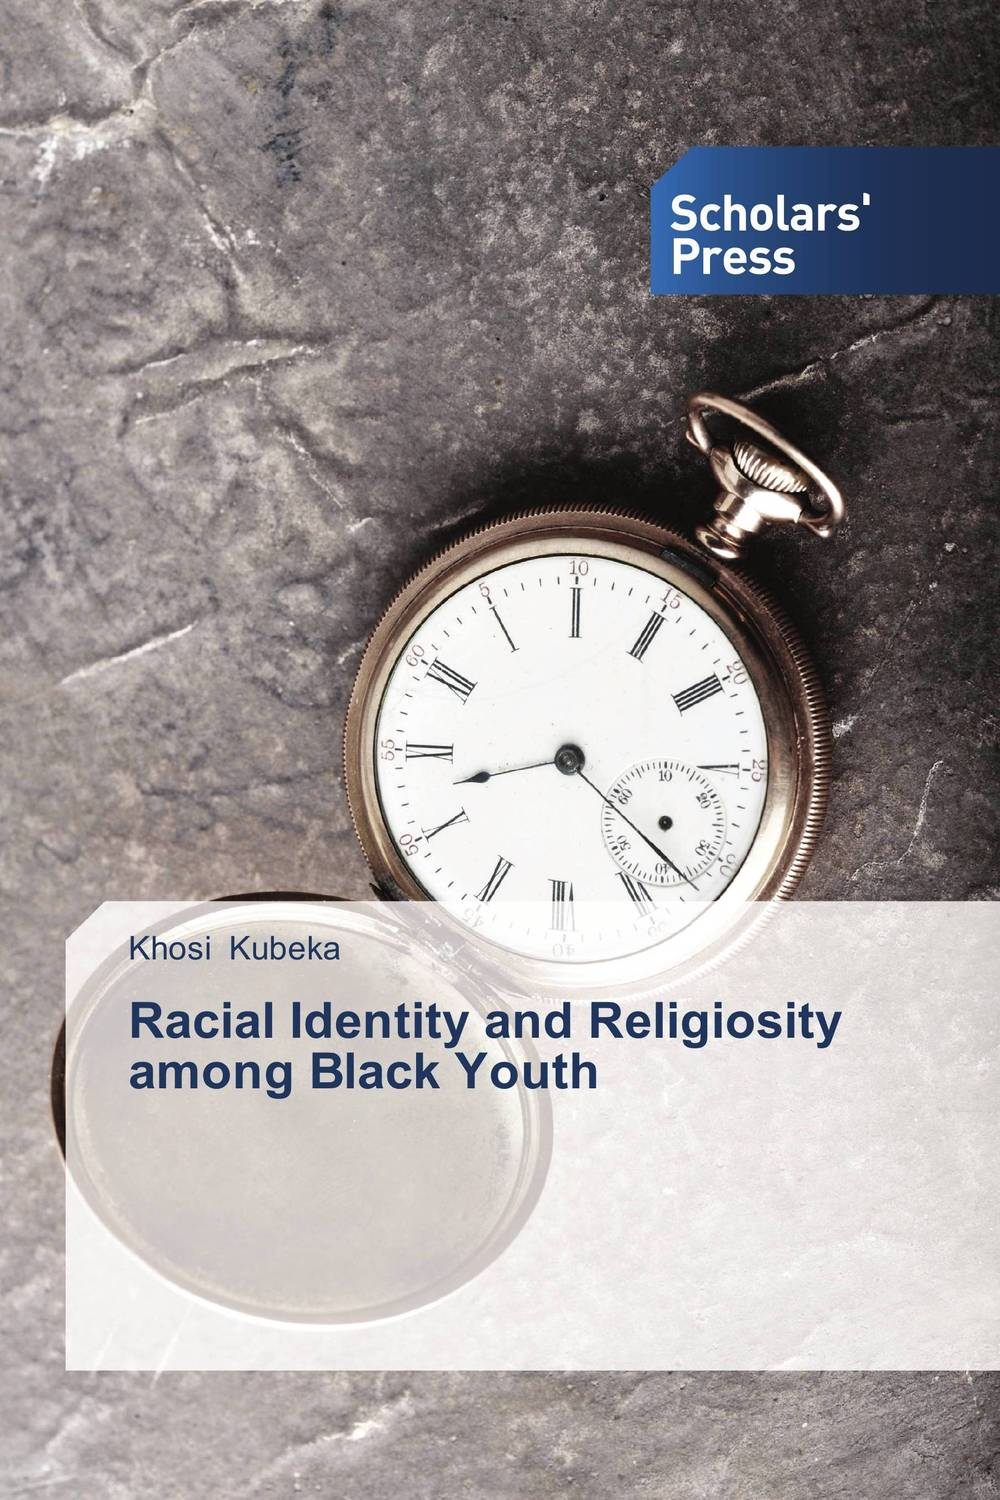 Racial Identity and Religiosity among Black Youth